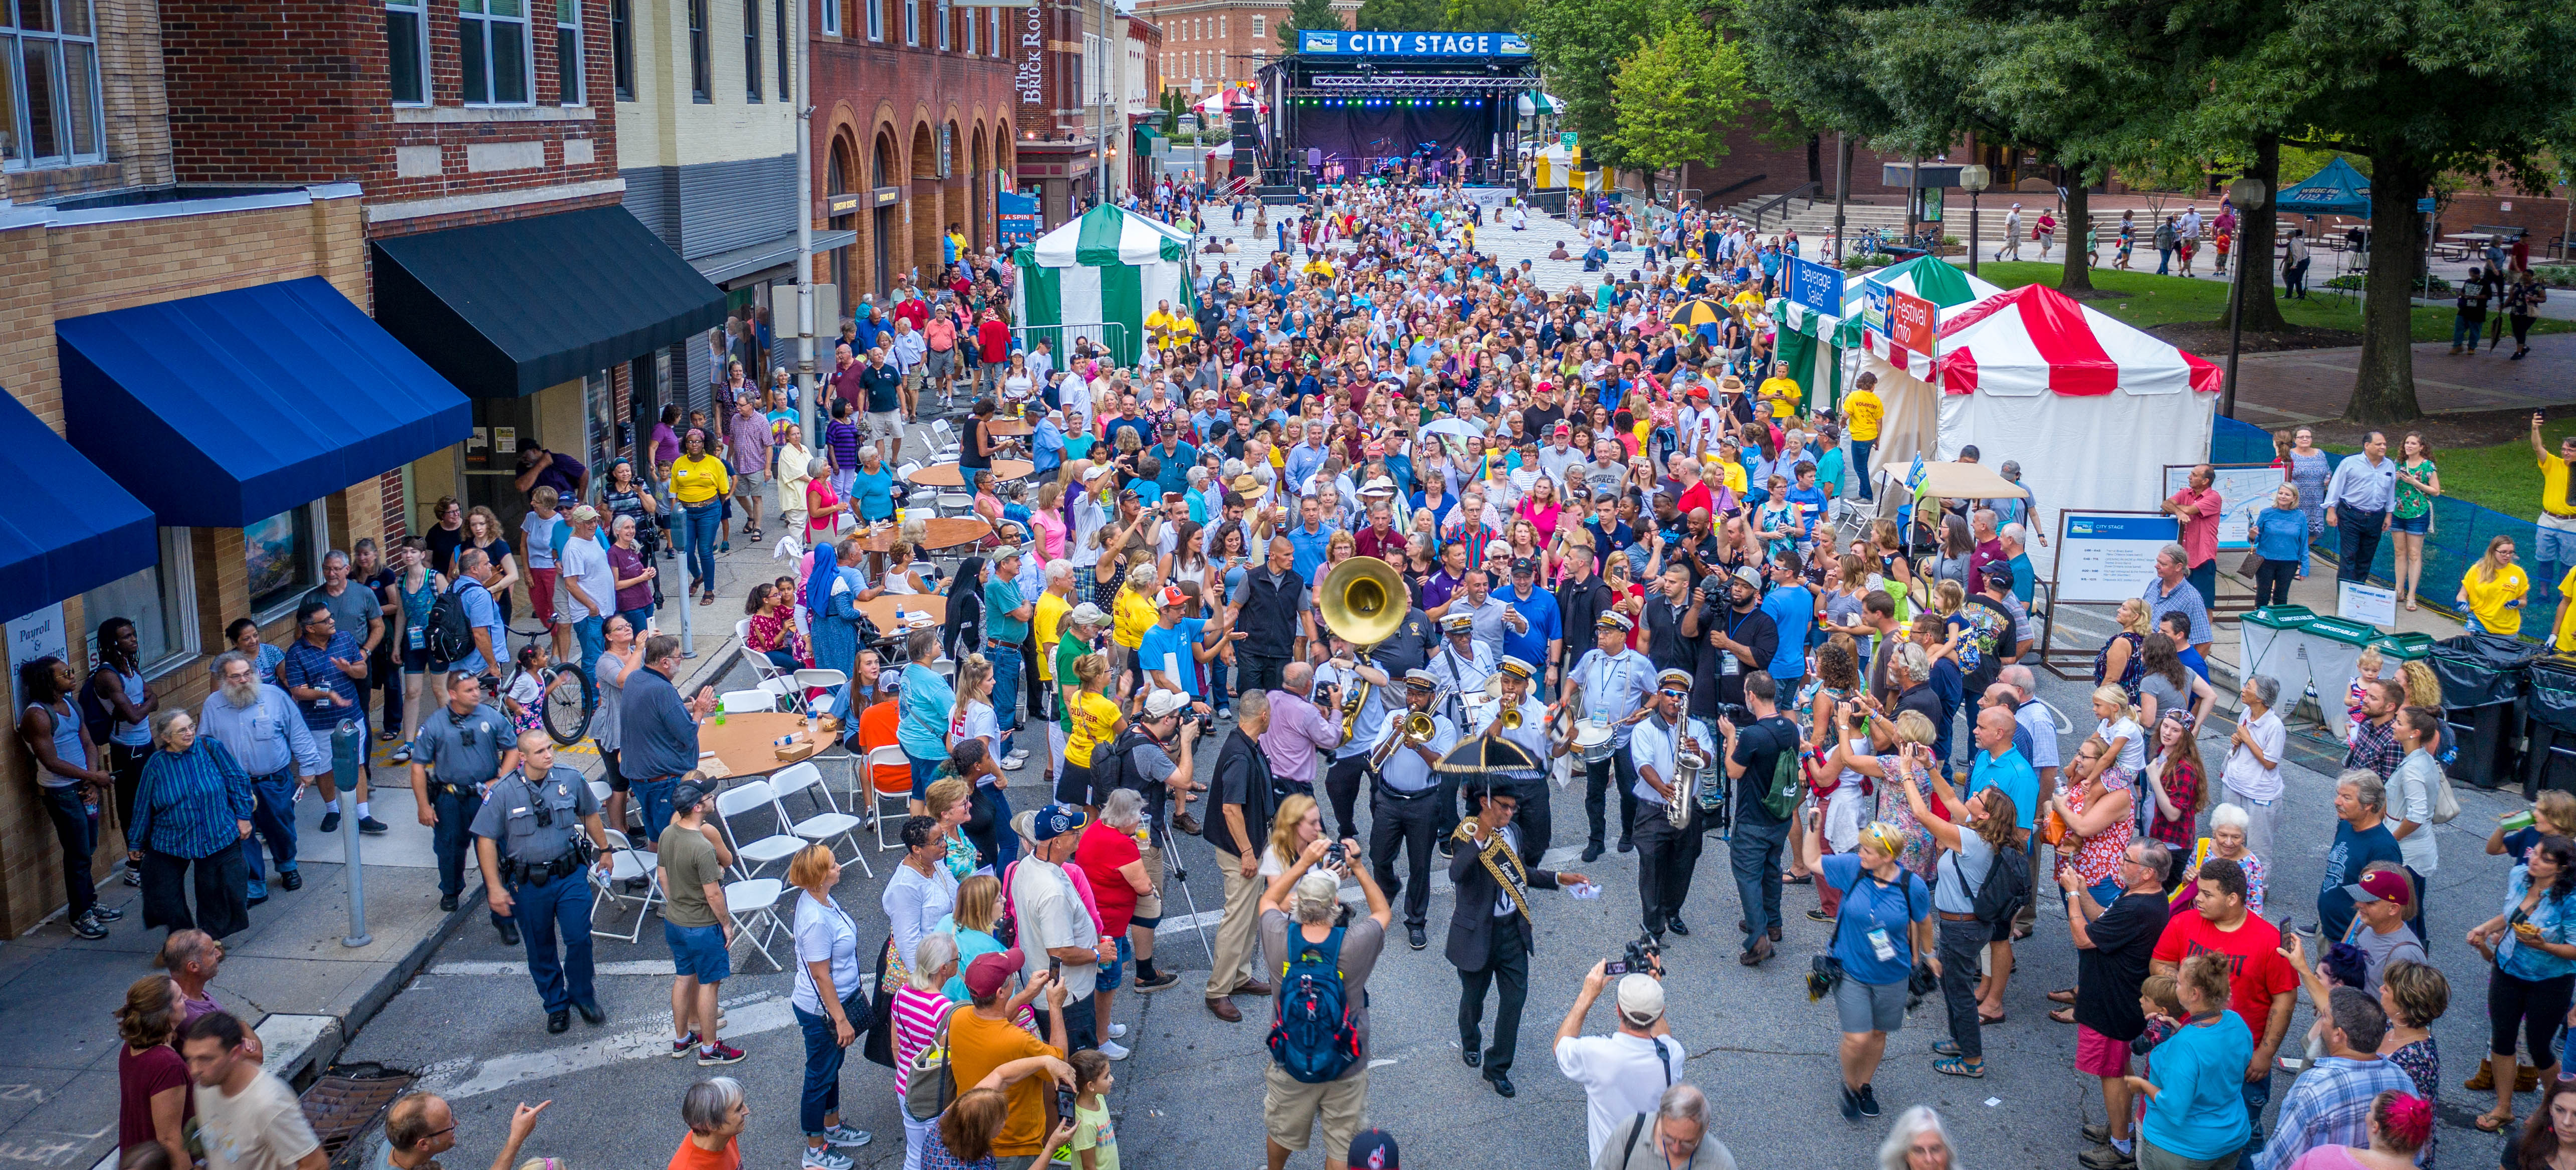 The 78th Annual National Folk Festival, Salisbury, MD, photo courtesy of the National Council for the Traditional Arts